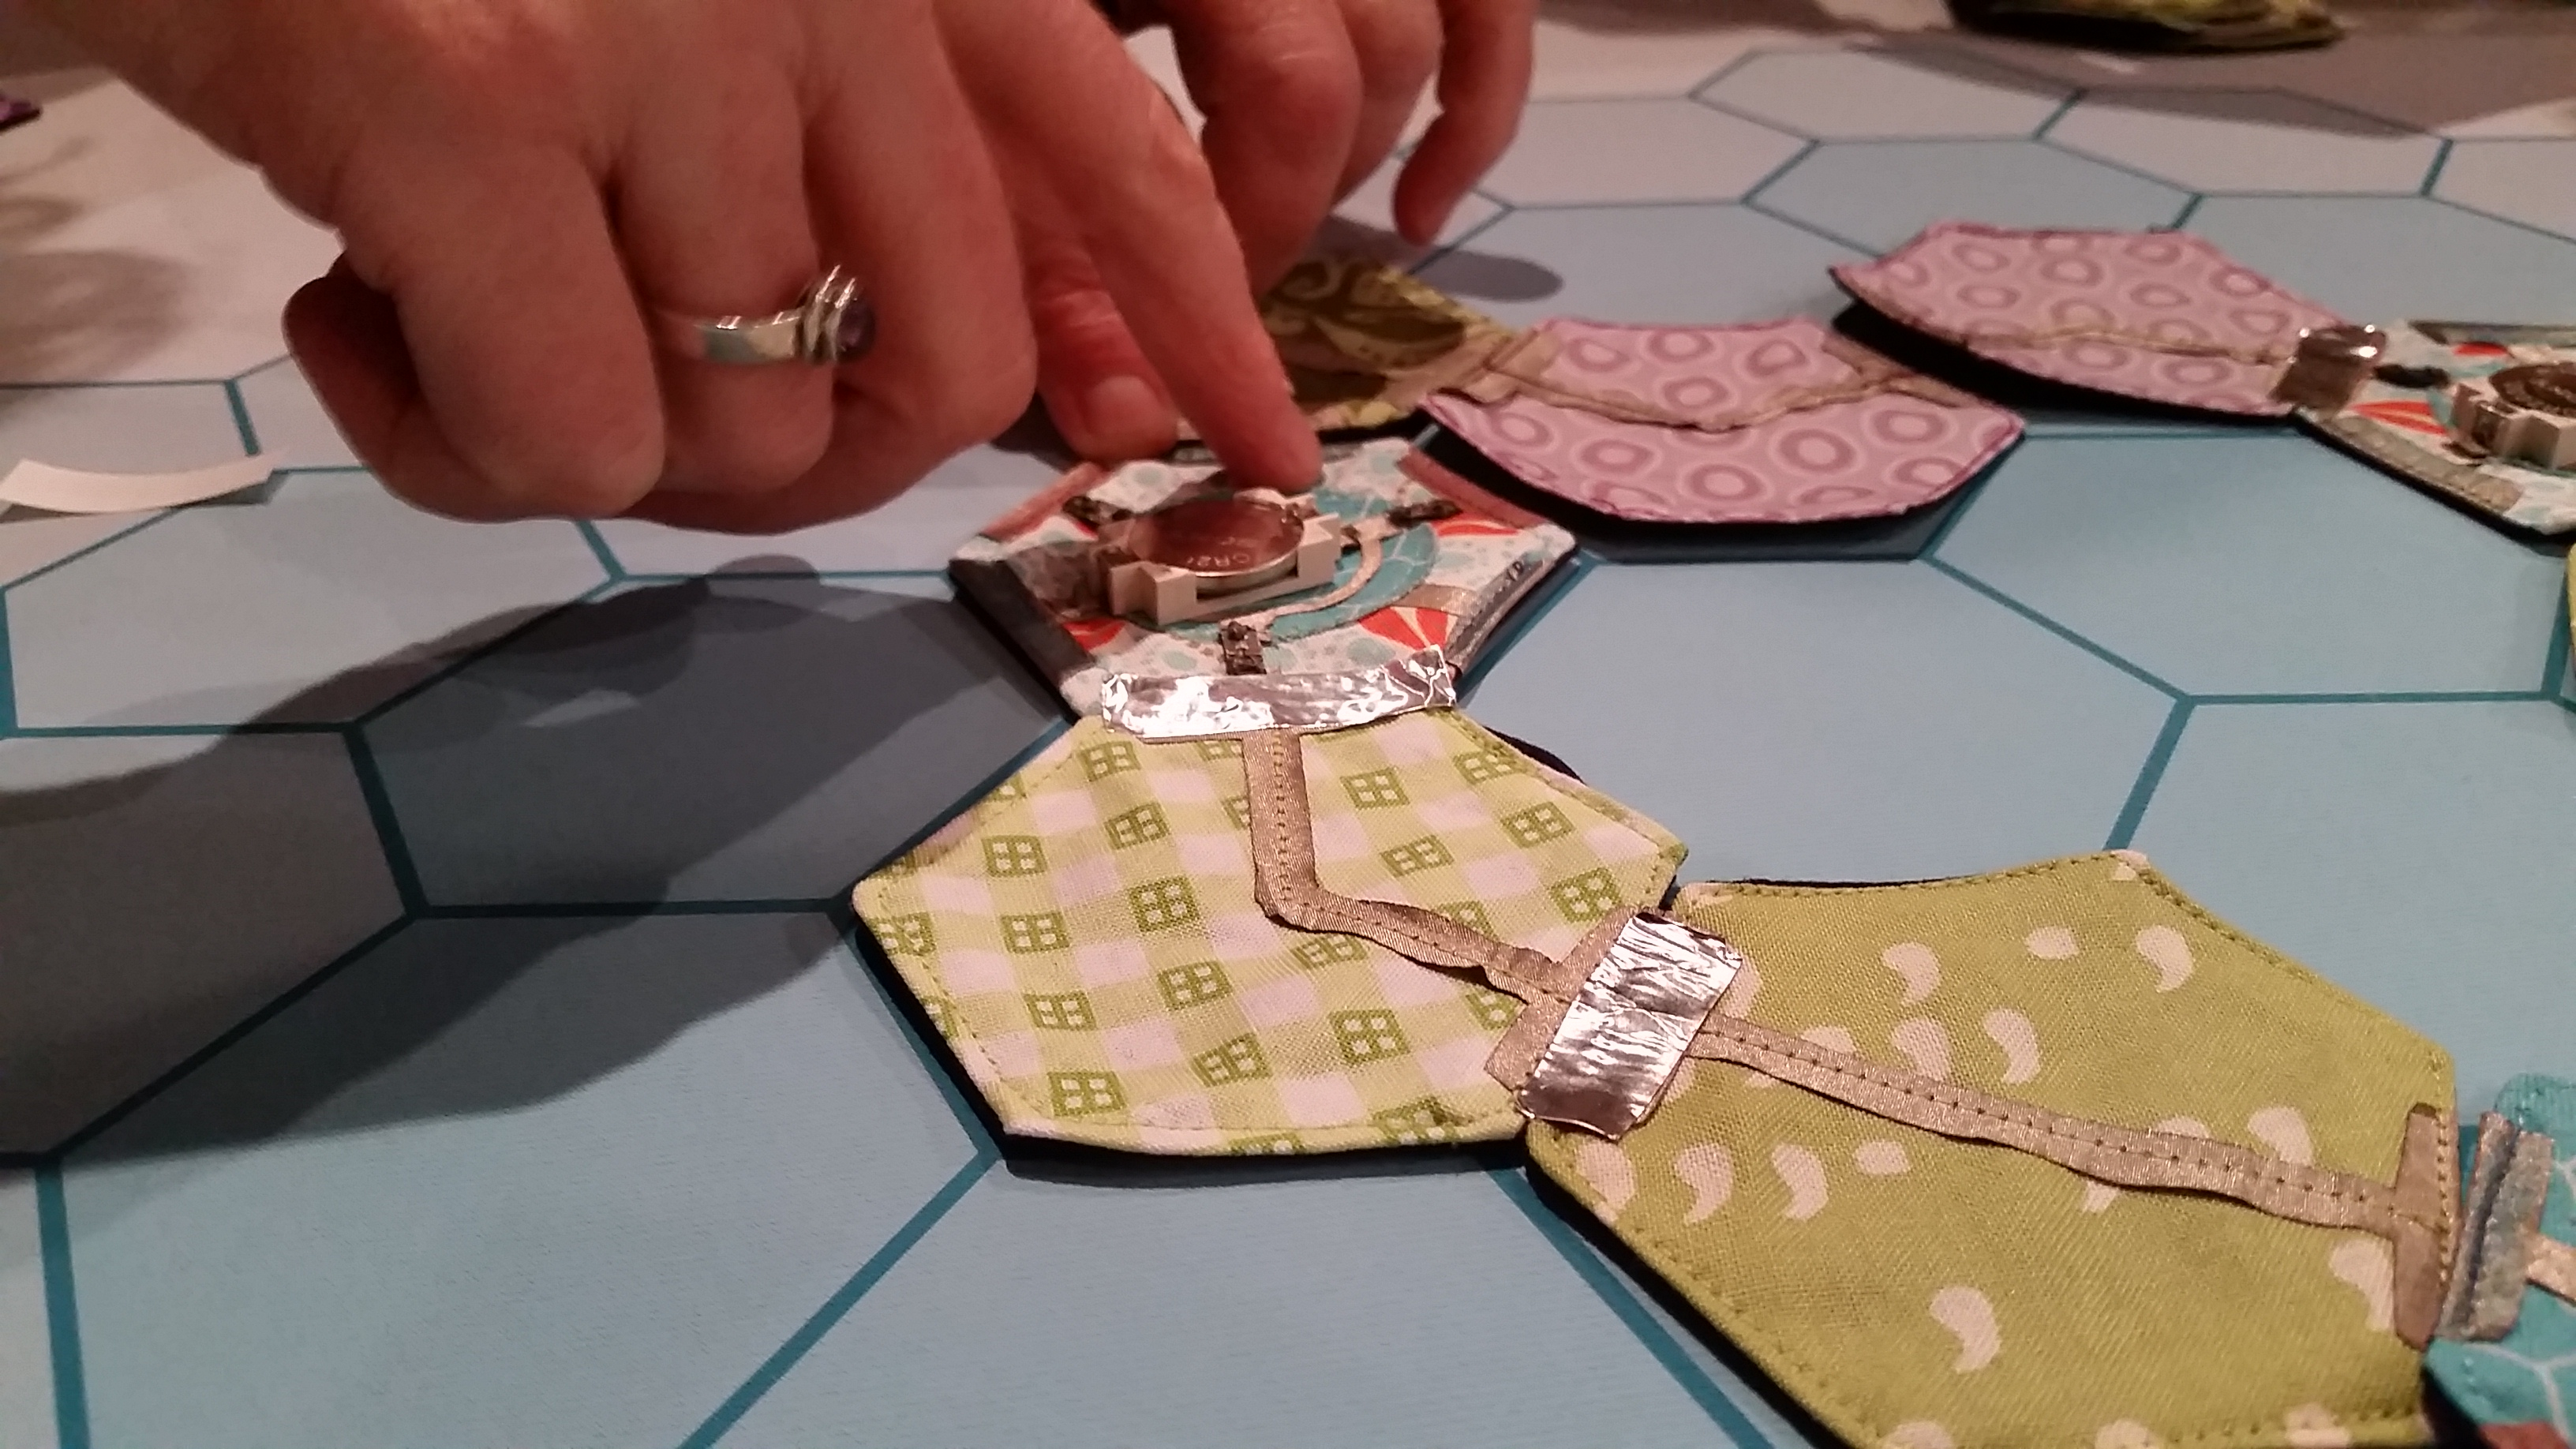 Finishing with conductive tape